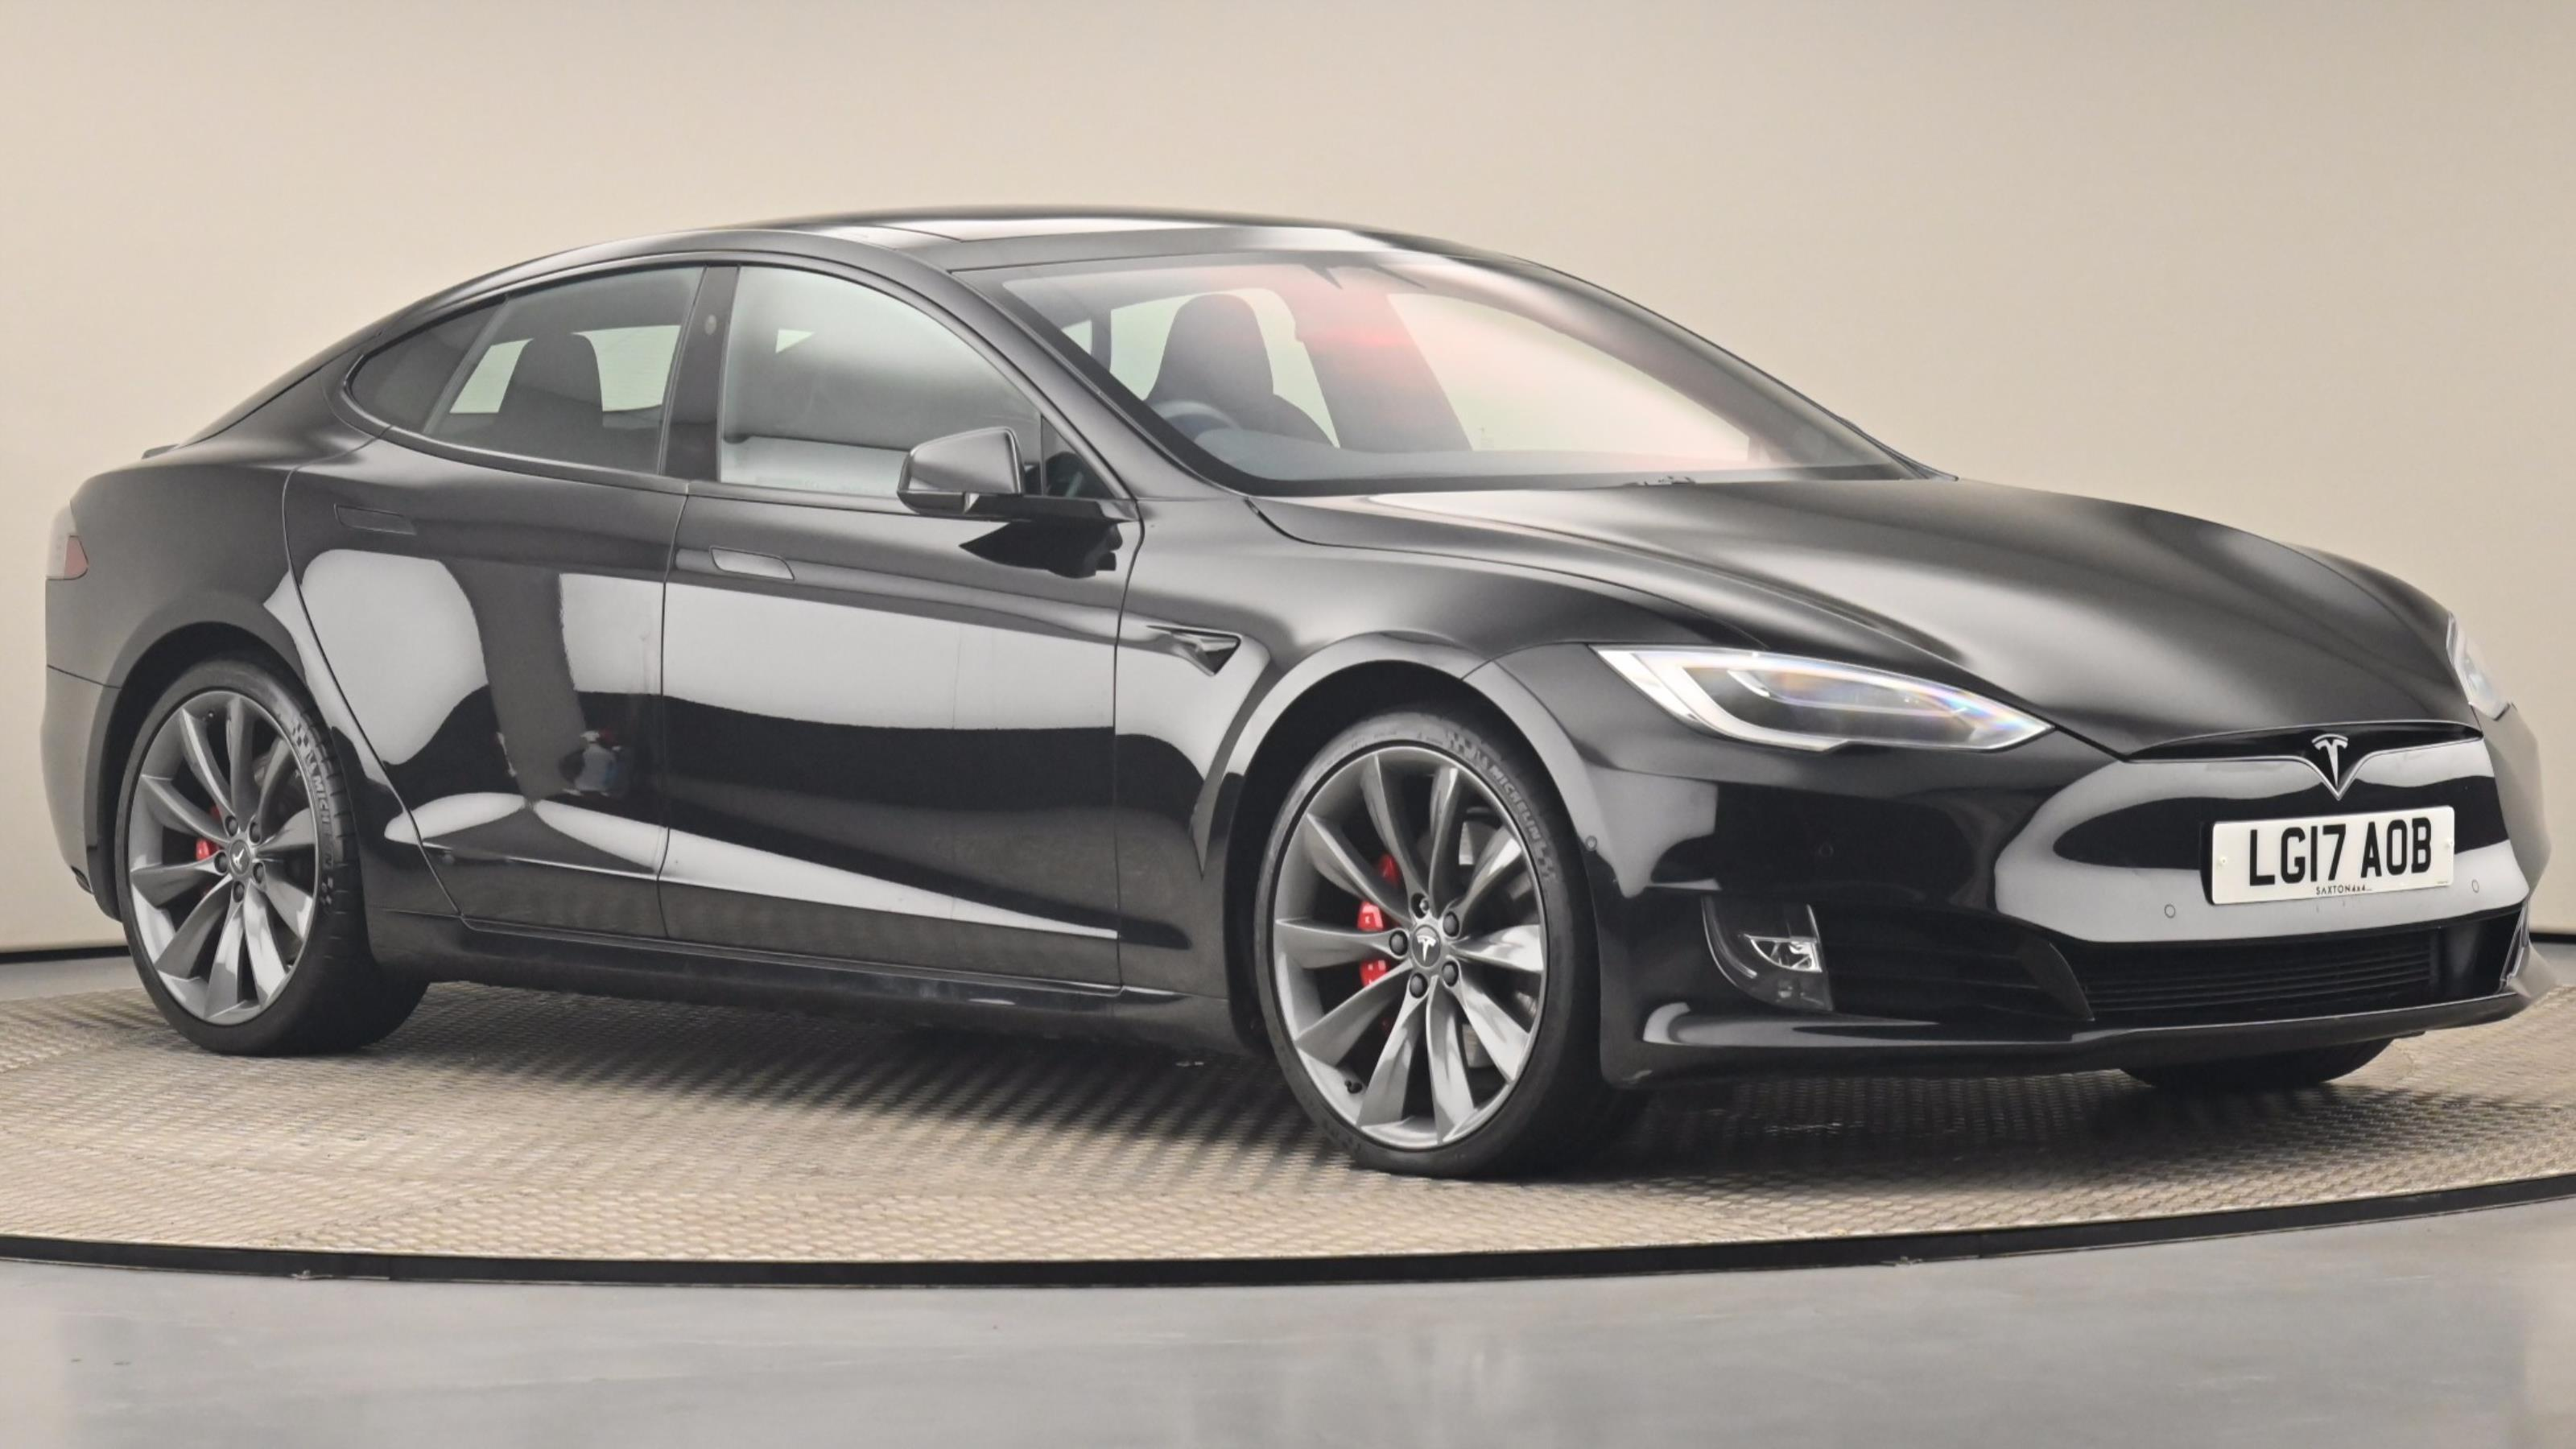 Used 2017 Tesla MODEL S P100DL (Ludicrous) 449kW 100kWh Dual Motor 5dr Auto BLACK at Saxton4x4